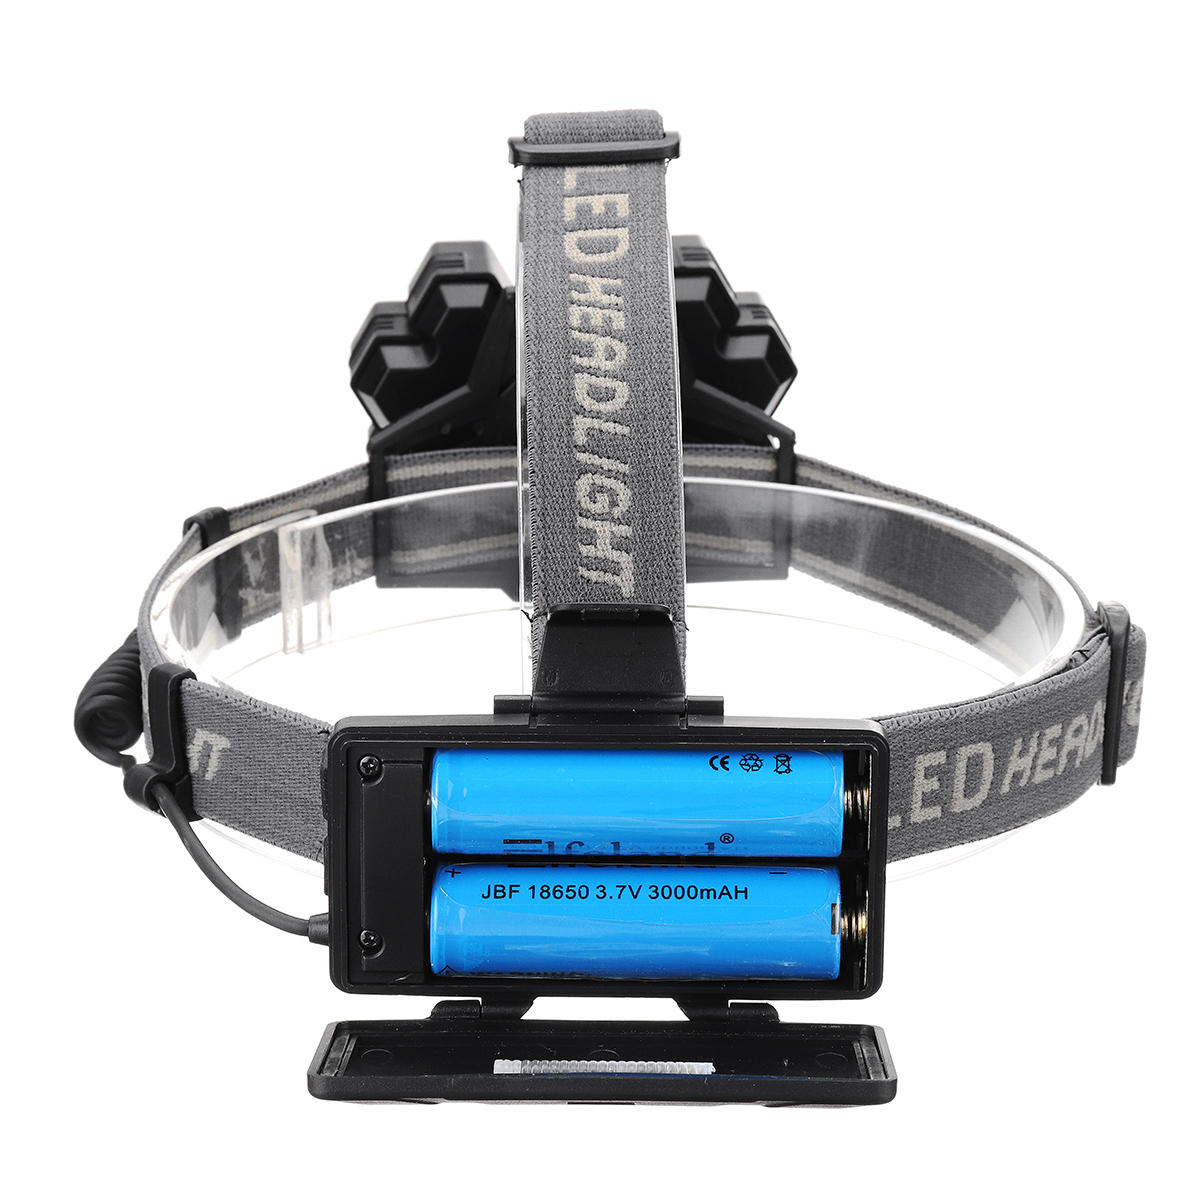 BORUiT B50 L2+4xXPG2 1200LM 6 Modes 160°Rotatable Type-C Headlamp Outdoor Cycling Camping Multifunctional Headlamp - 3